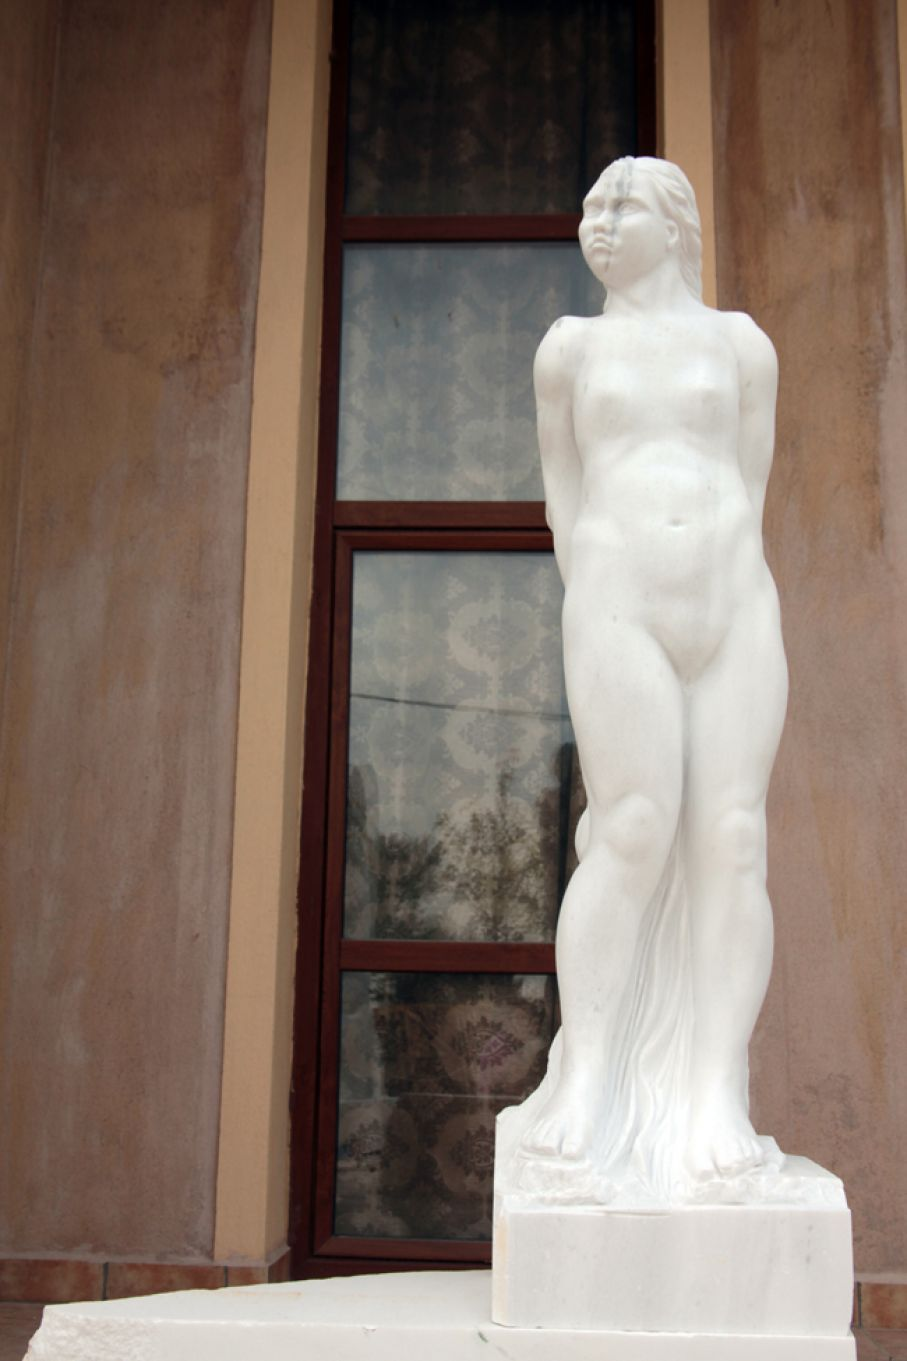 "Original marble sculpture of Stratos Pallas, completed on August 2013, within Myrό Antiques House premises, in Souroti, Thessaloniki, GREECE, as part of the Greek Marble Initiative, bearing the title ""Spring"". Dimensions: 150 X 40 X 30 cm (with its base but without its pedestral)."